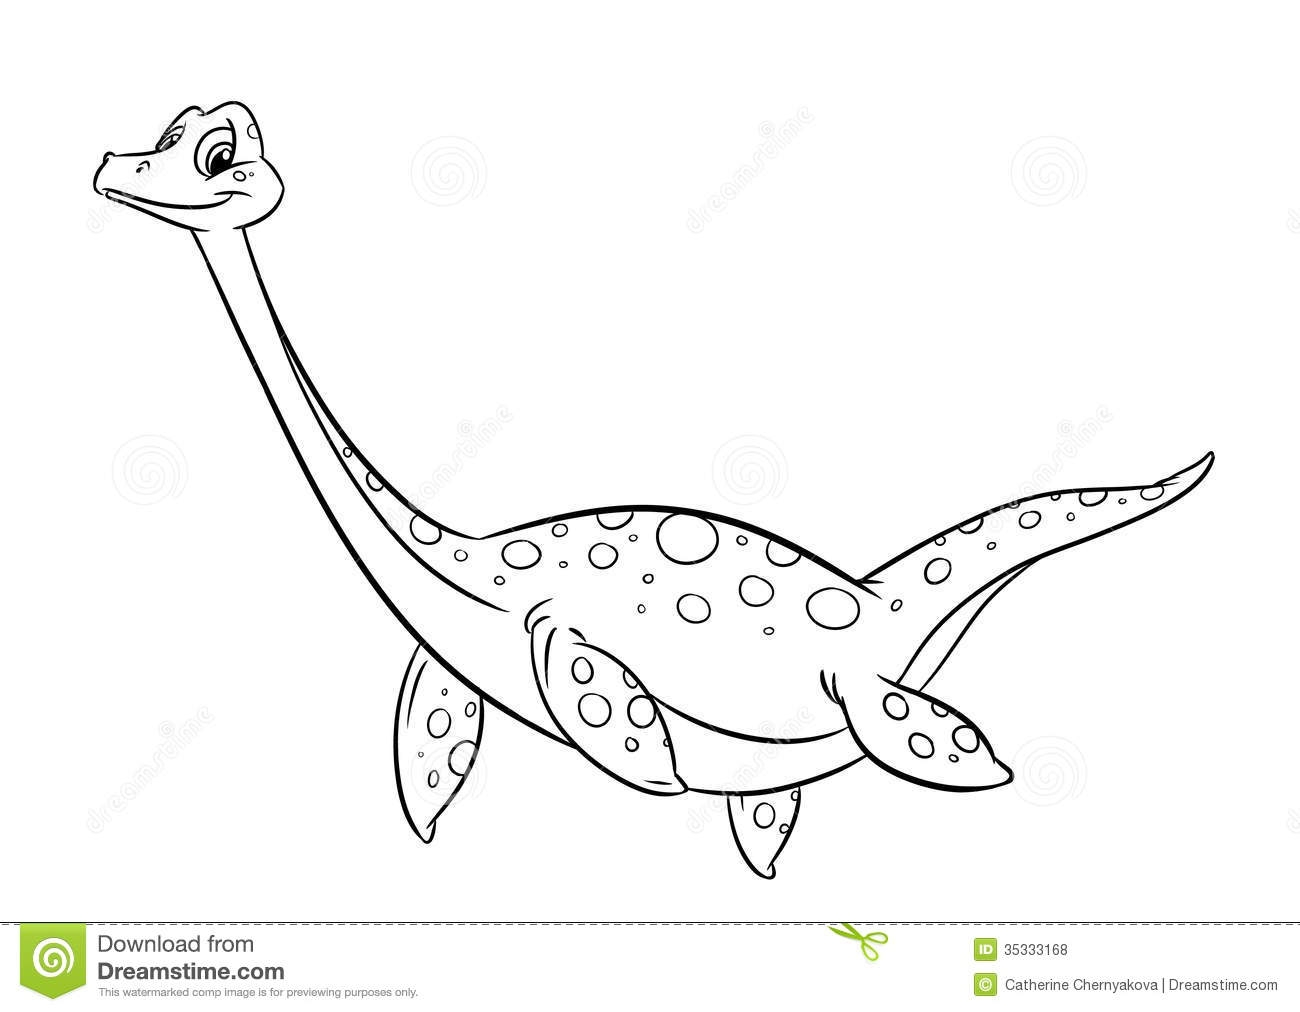 reptile coloring pages - royalty free stock photos dinosaur coloring pages isolated illustration cartoon image